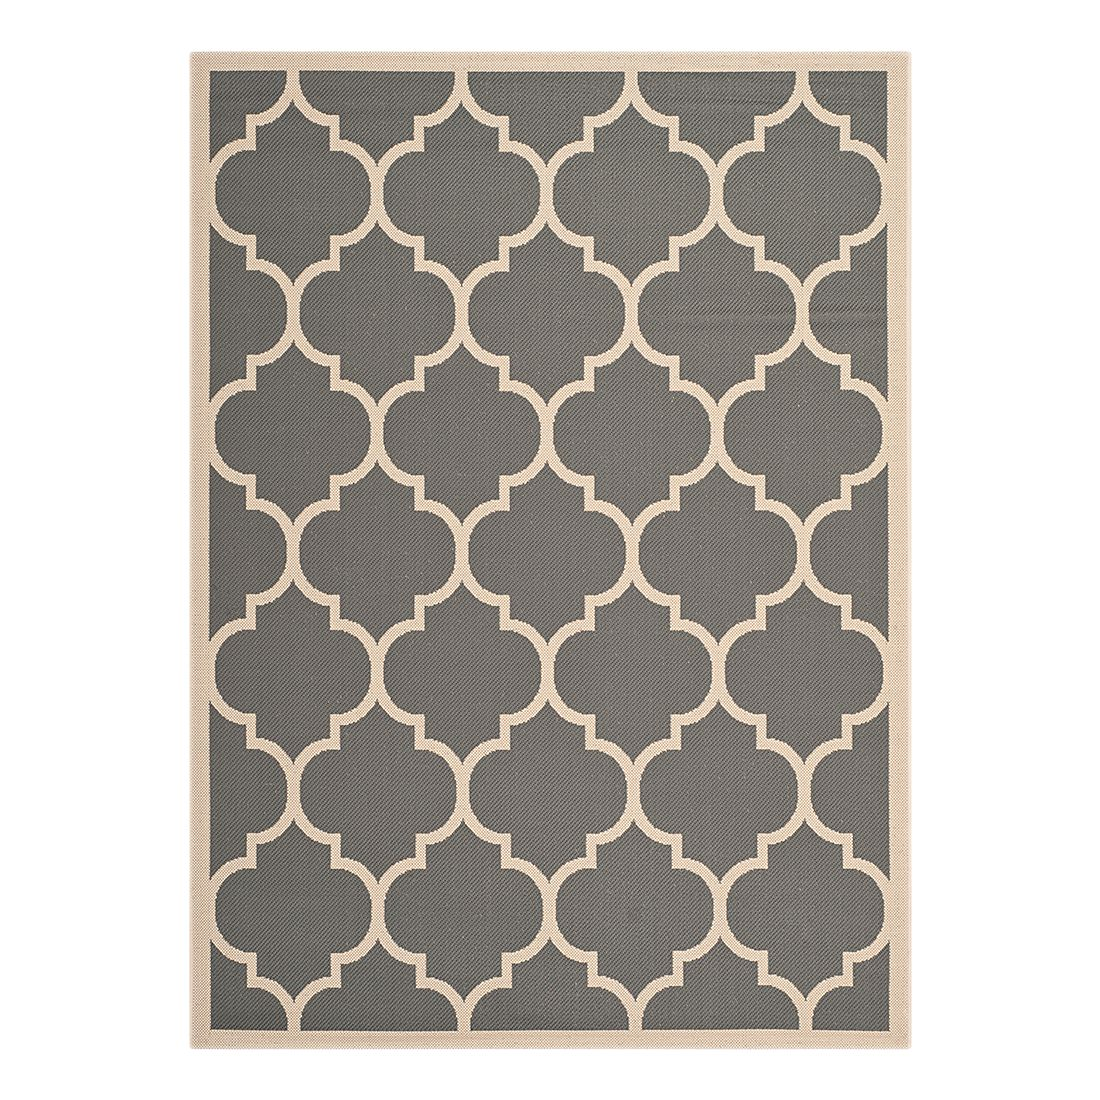 In-/Outdoorteppich Monaco - Anthrazit/Beige - 122 x 171 cm, Safavieh